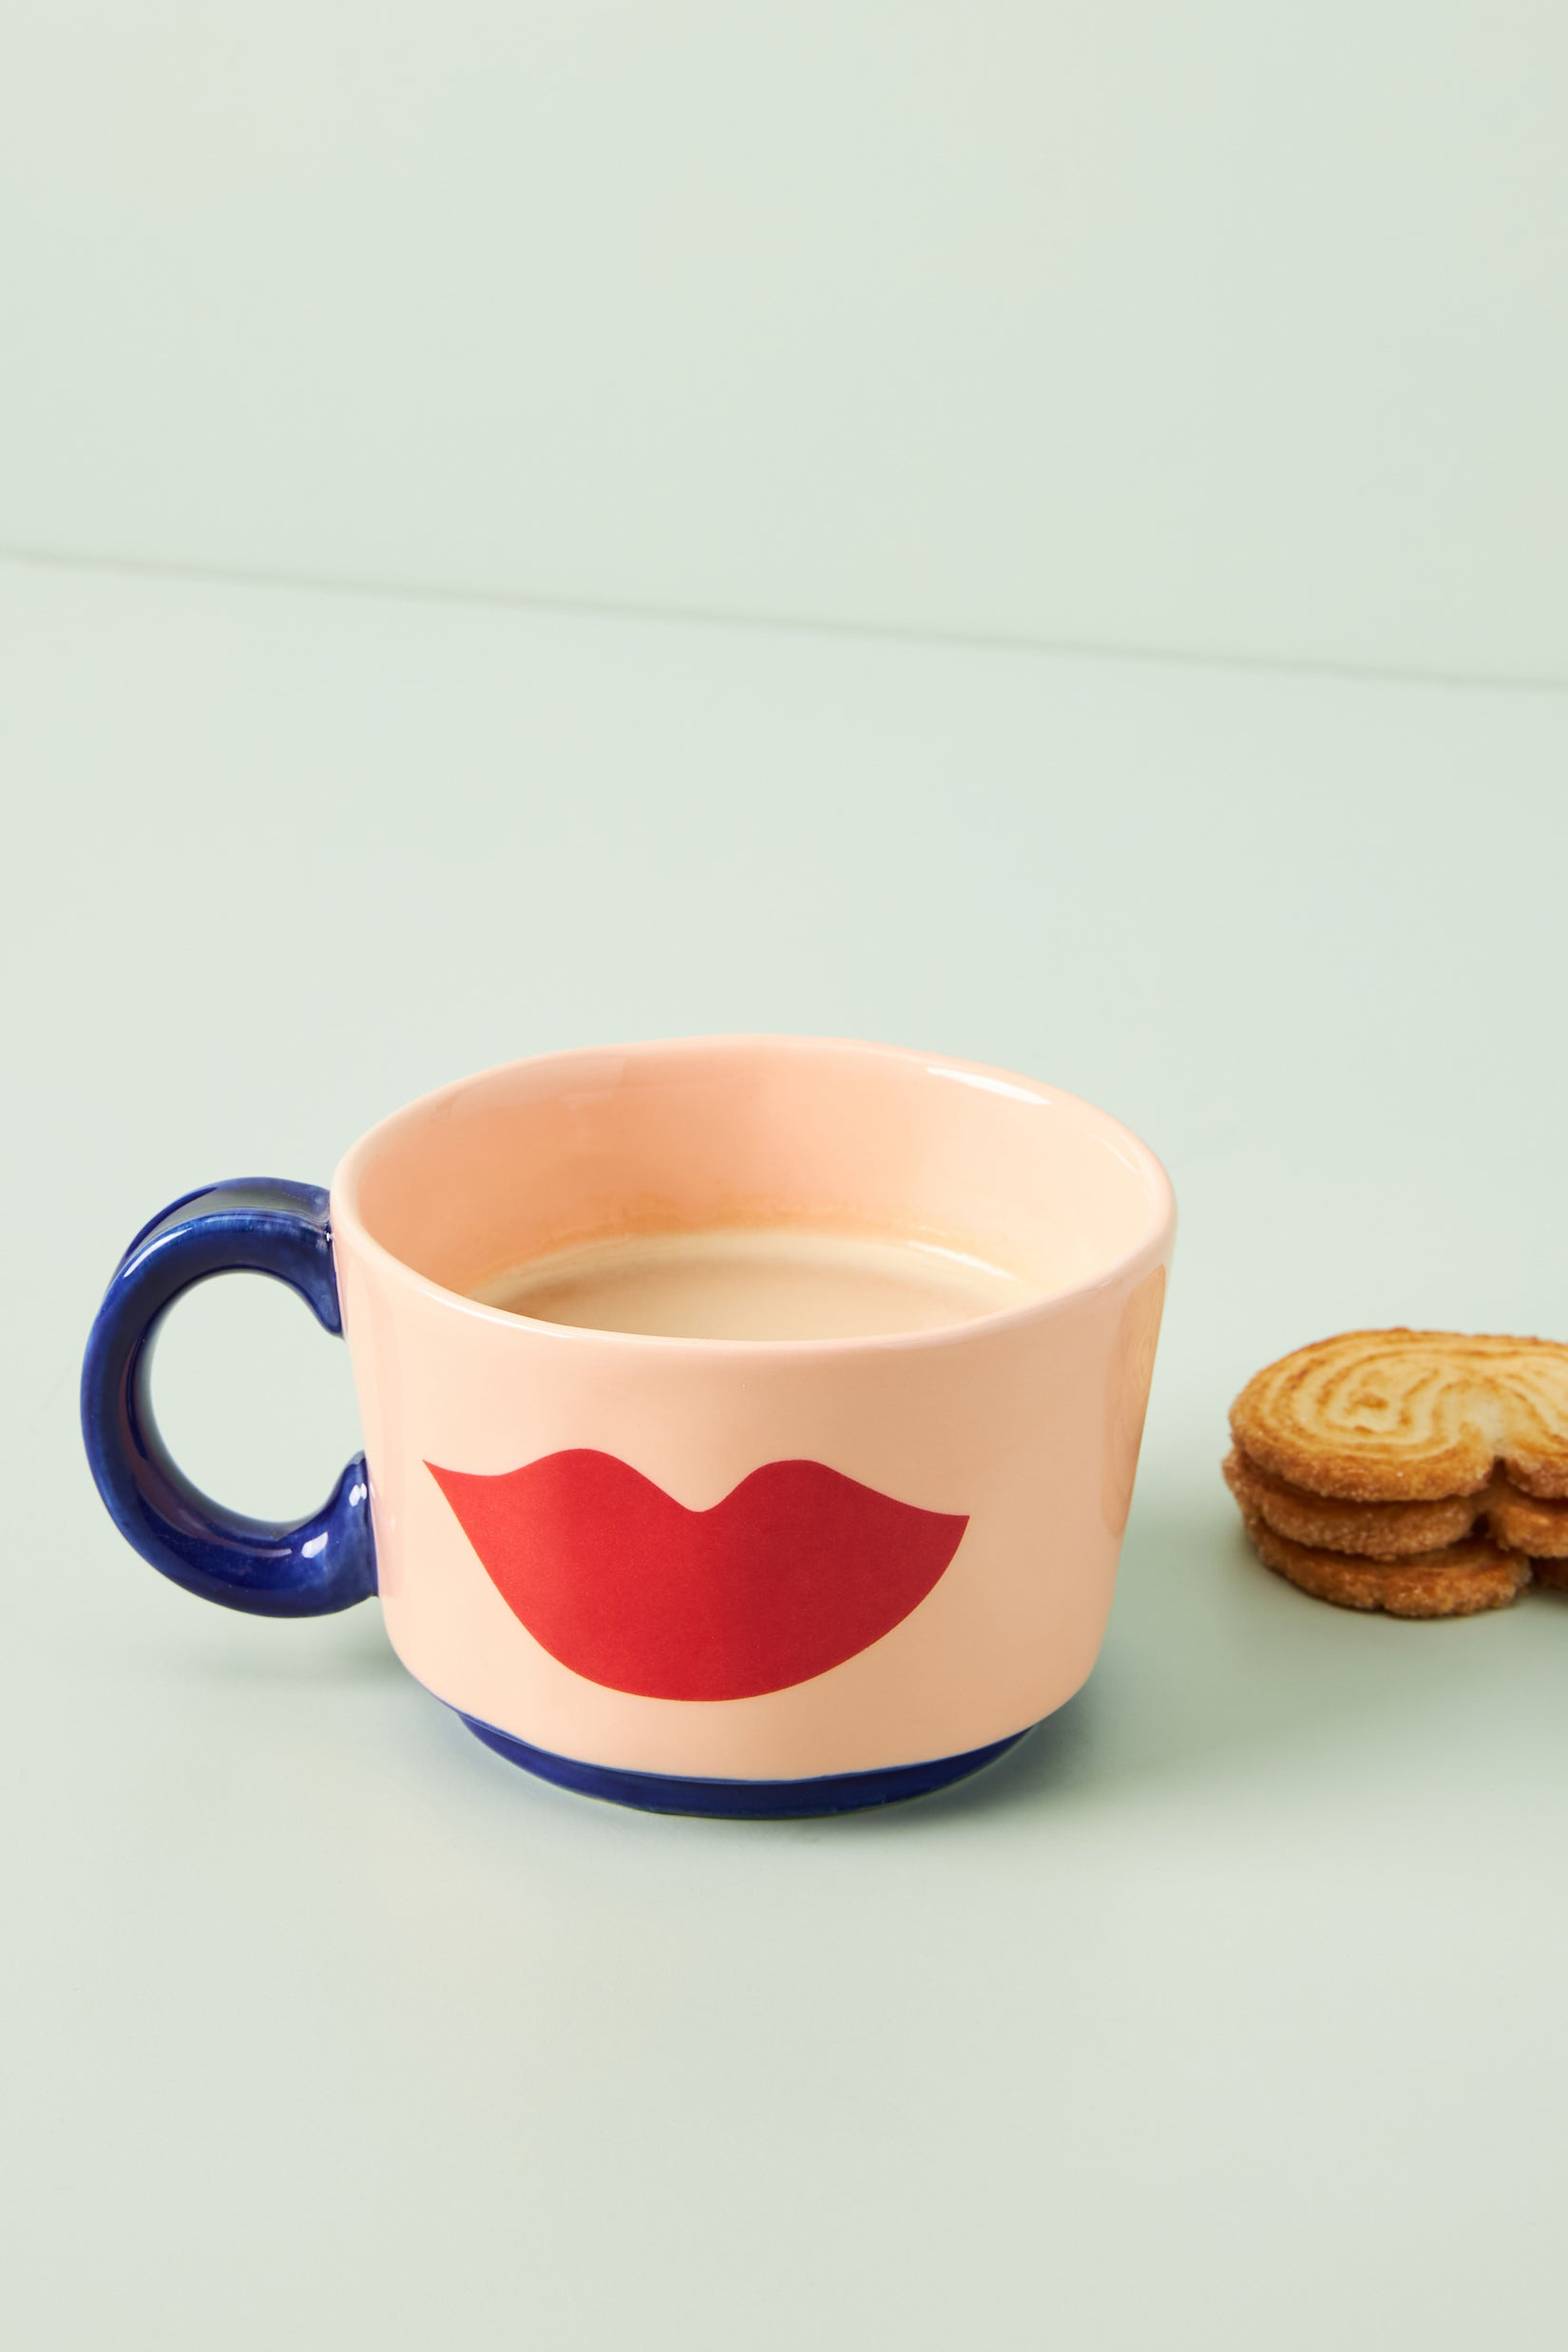 pink mug with red lip print on it